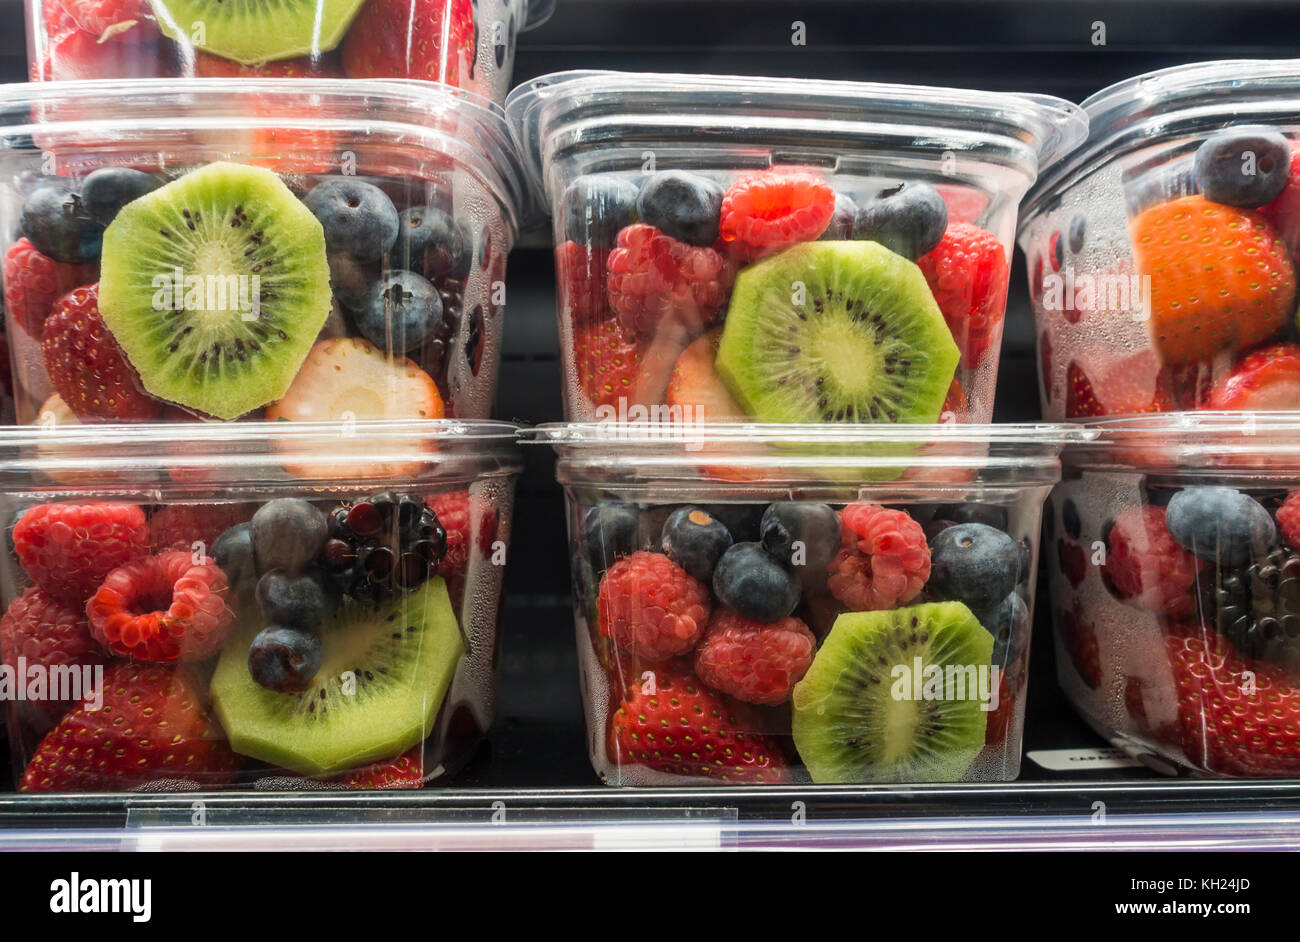 Fruit Bins For Sale Rasberries Stock Photos And Rasberries Stock Images Alamy